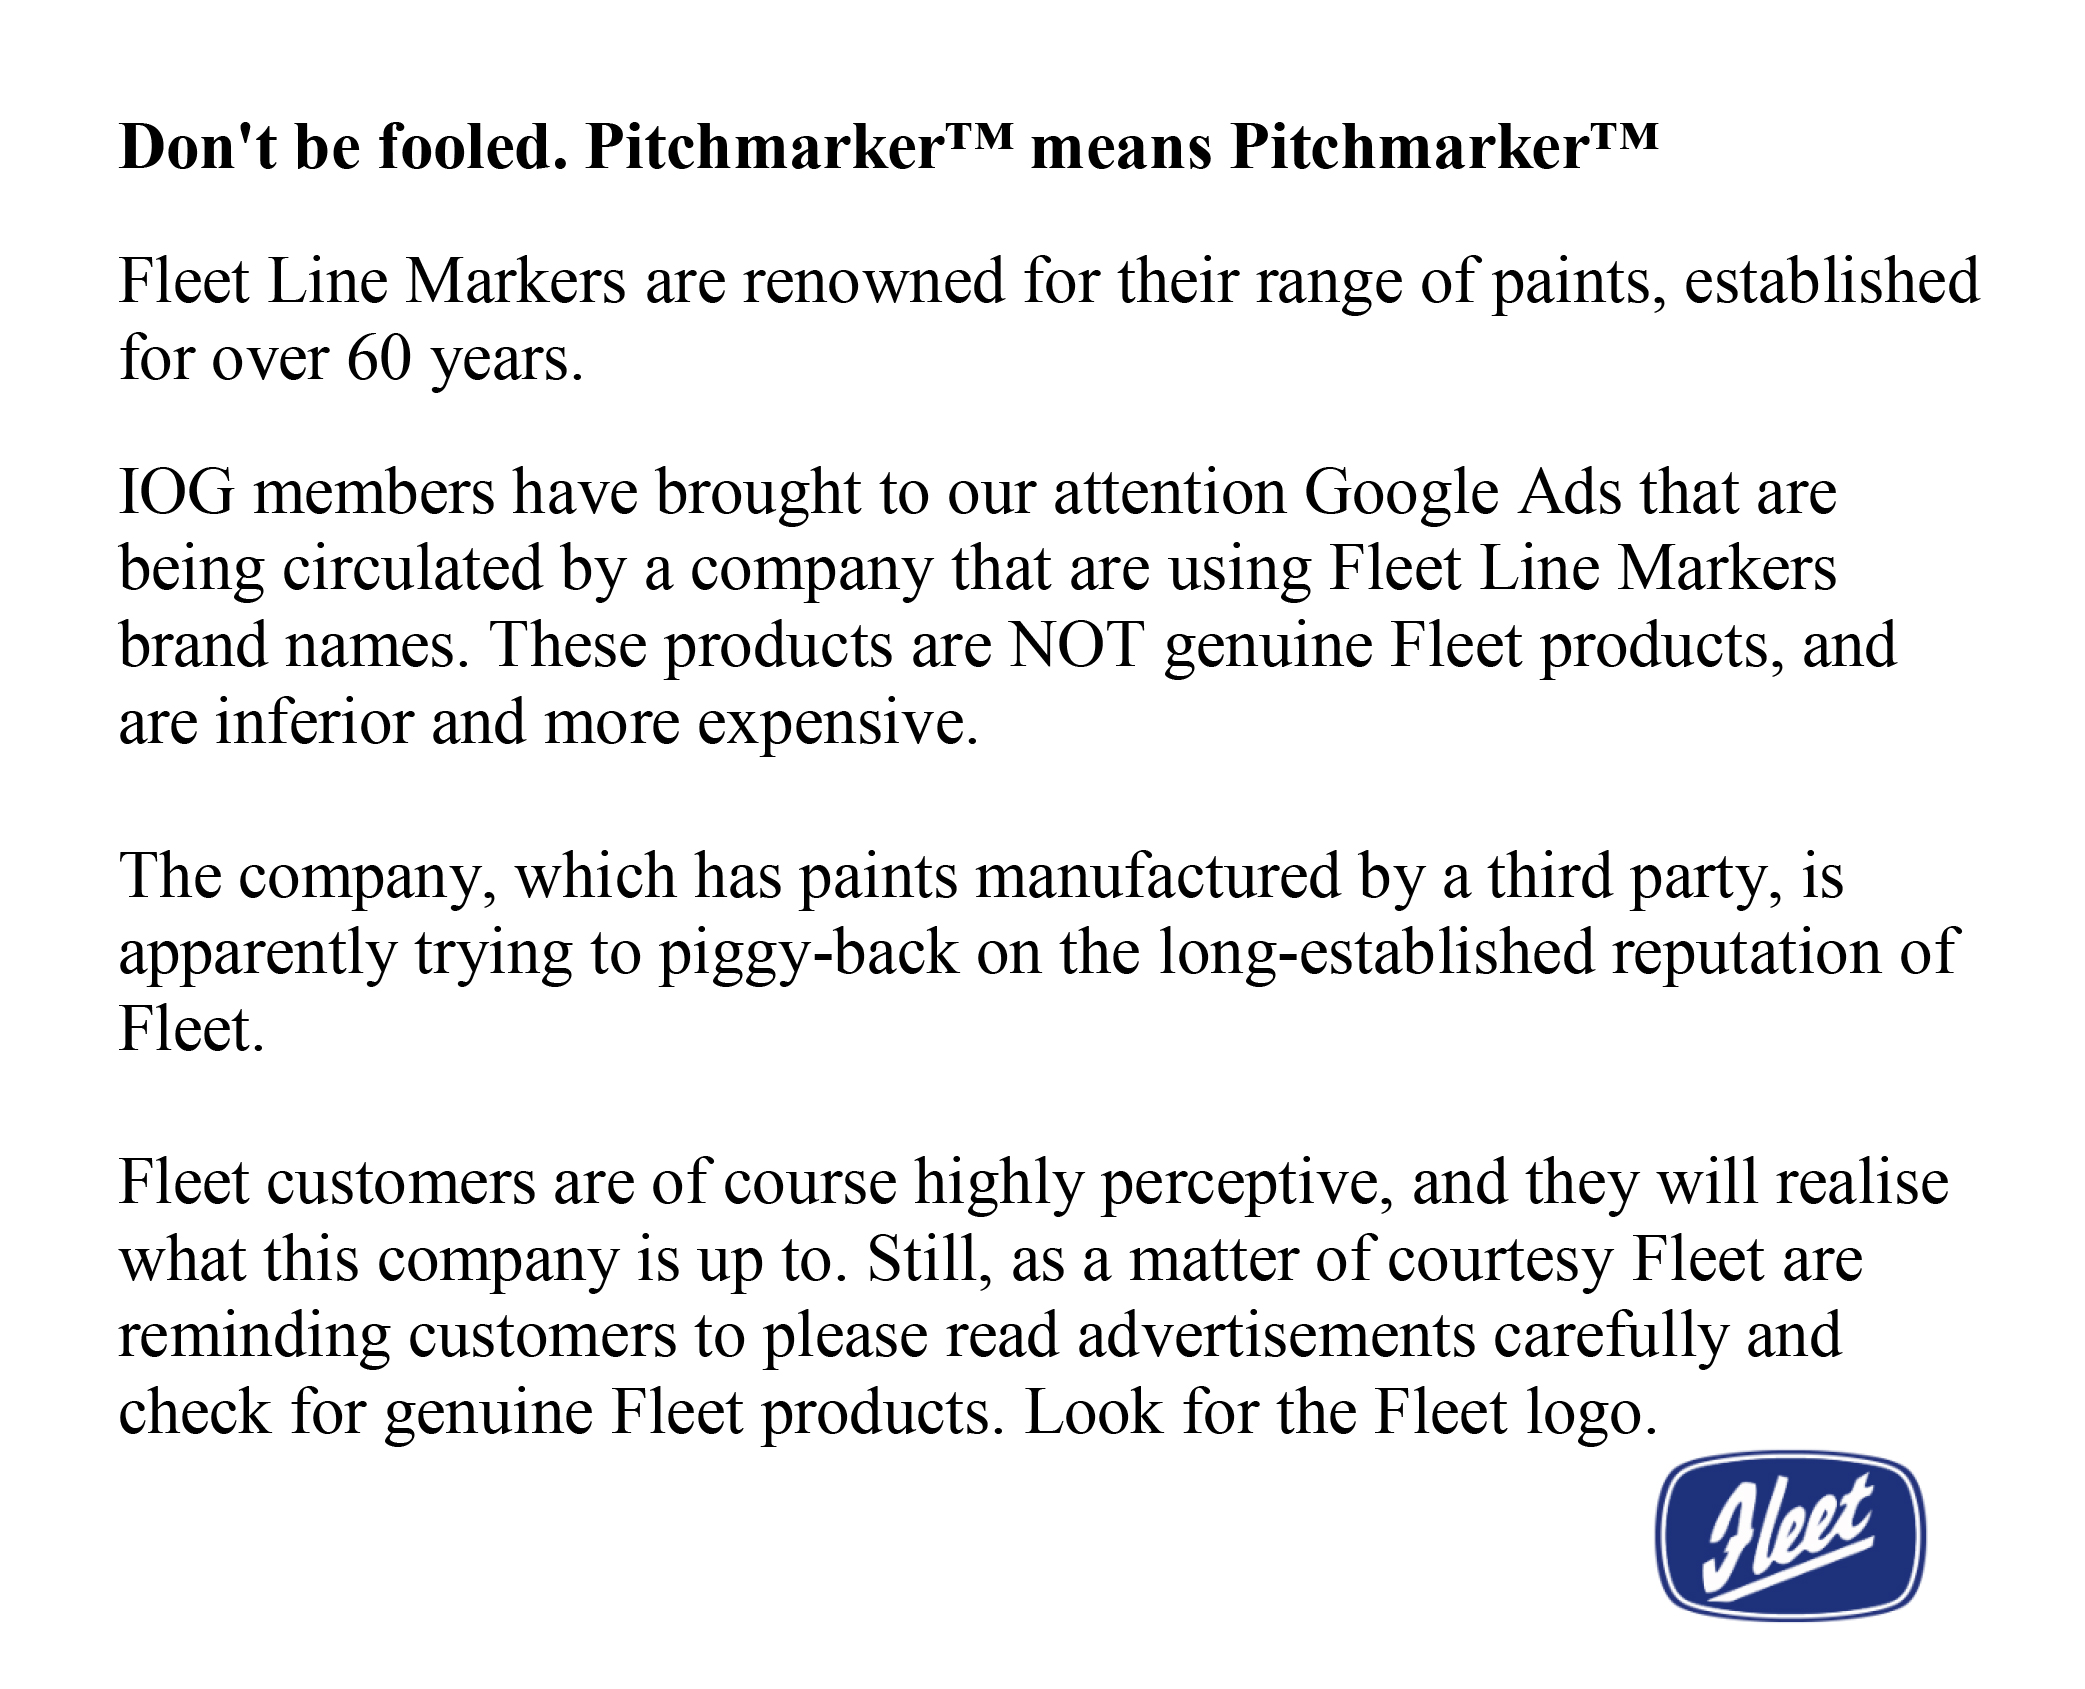 picture words regarding fleet trademarks